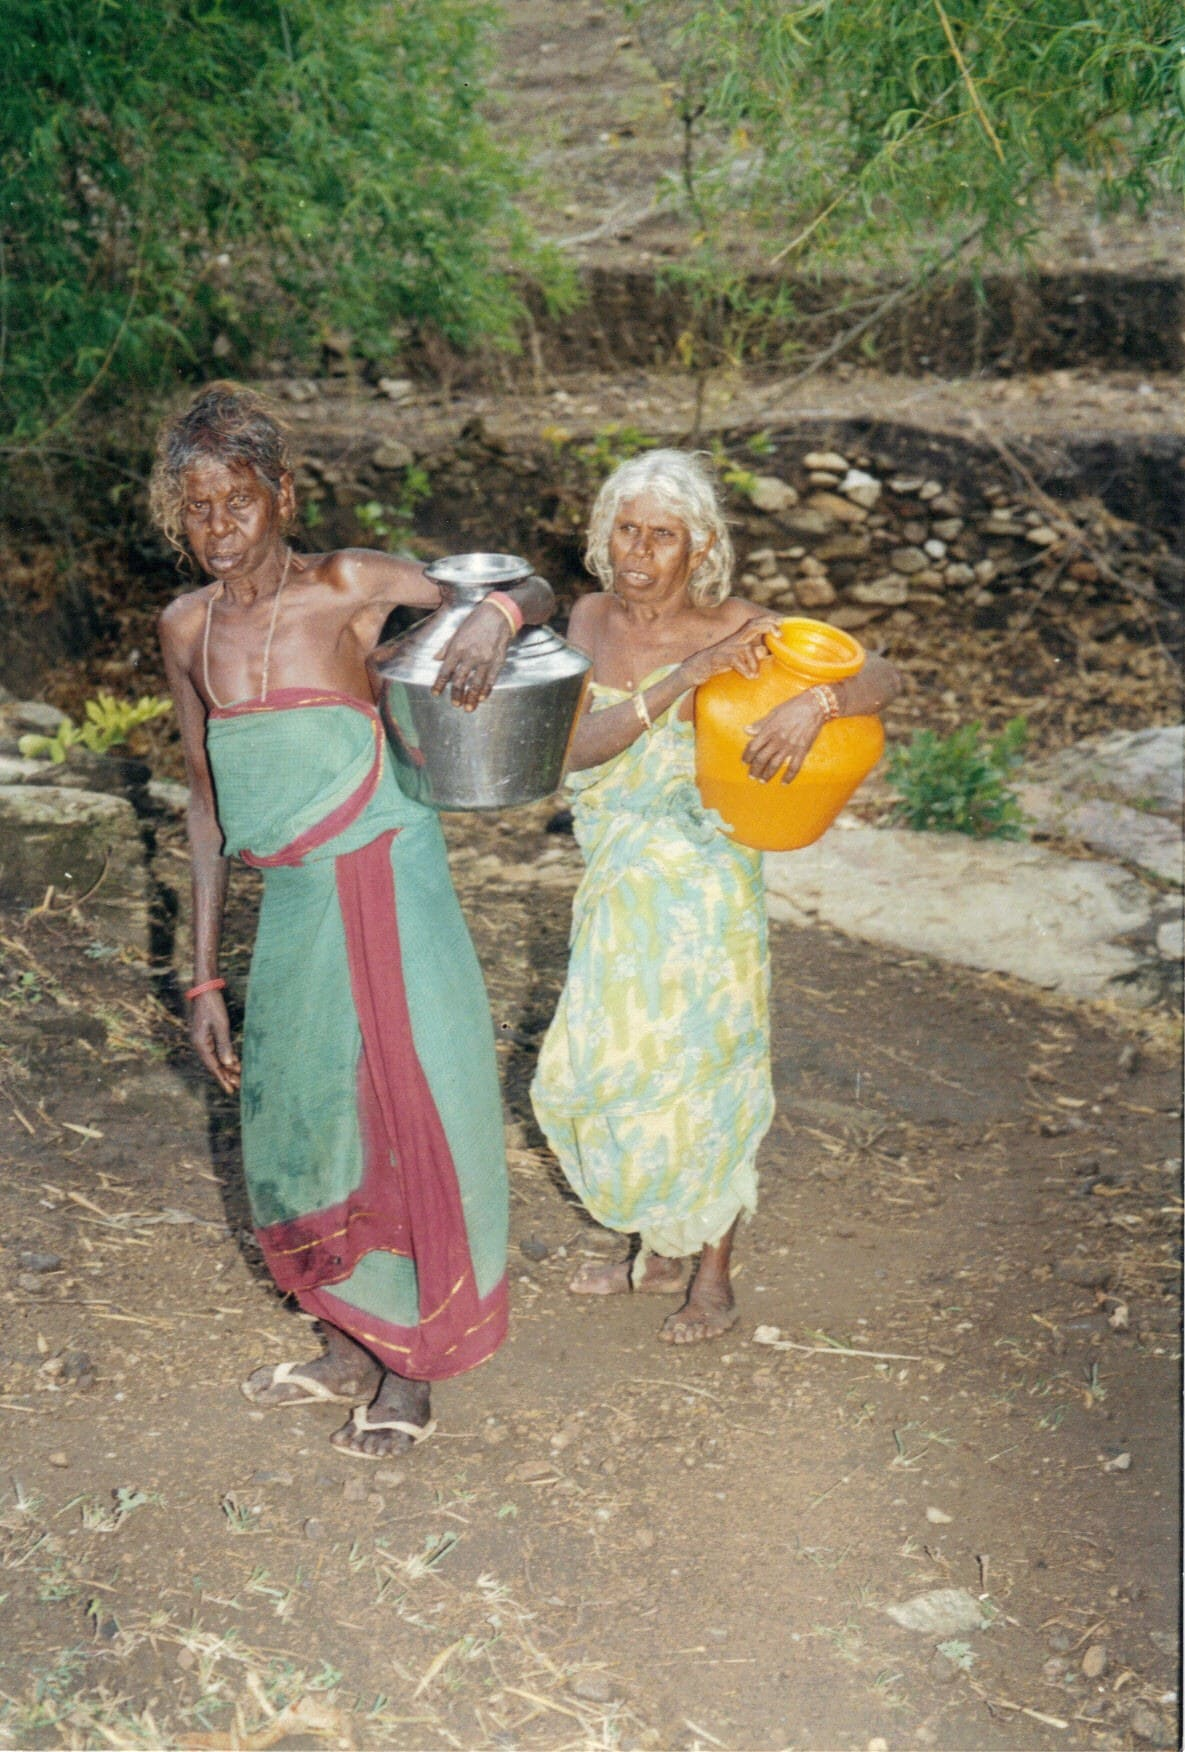 Tribal woment carrying water